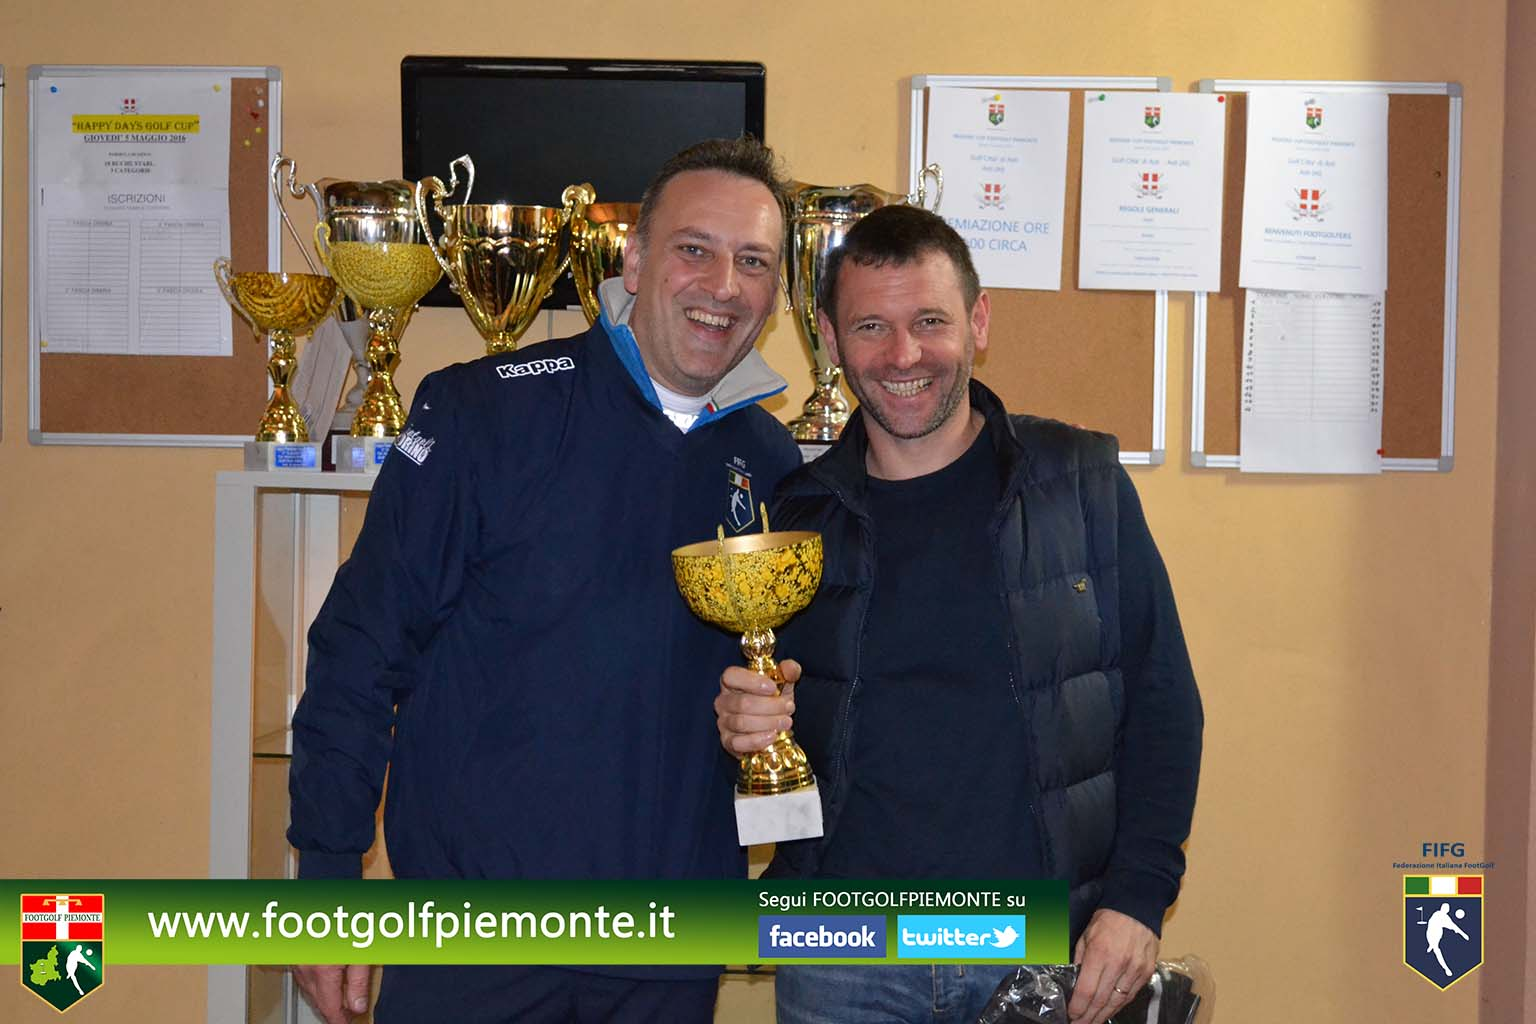 FOTO 9 Regions' Cup Footgolf Piemonte 2016 Golf Città di Asti (At) 30apr16-117